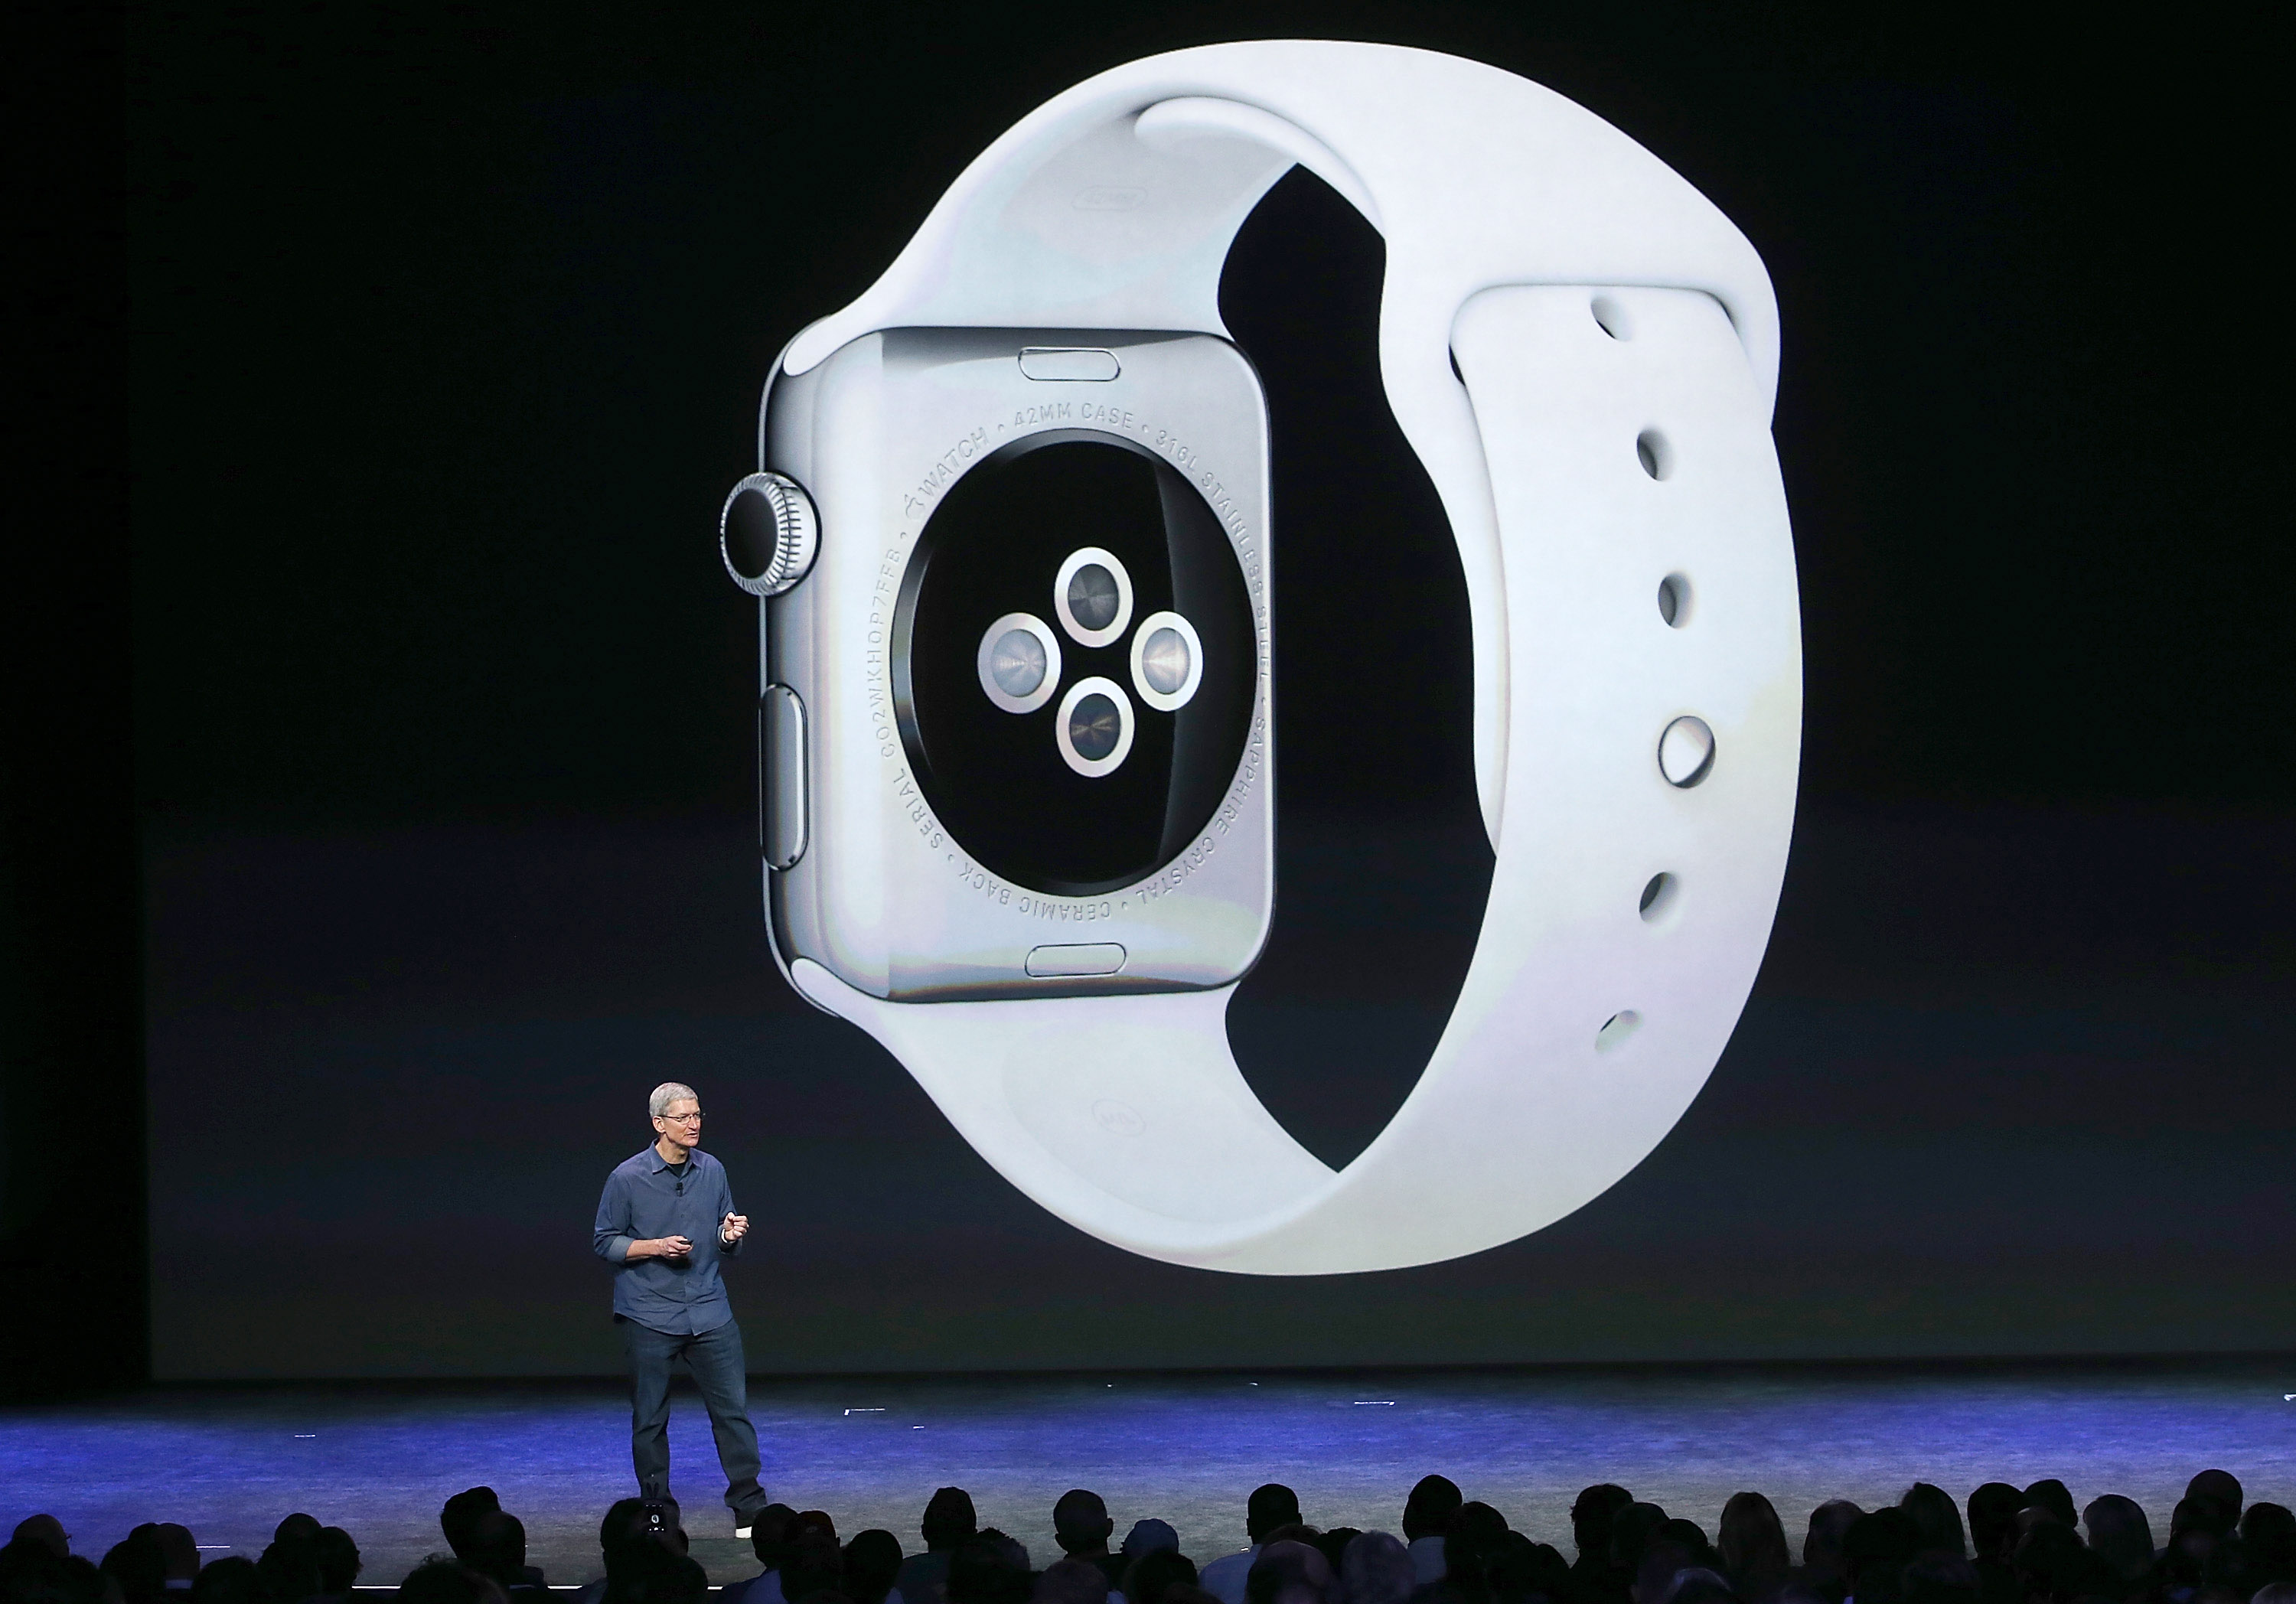 Apple CEO Tim Cook speaks about the new Apple Watch during an Apple special event at the Flint Center for the Performing Arts on September 9, 2014 in Cupertino, California.